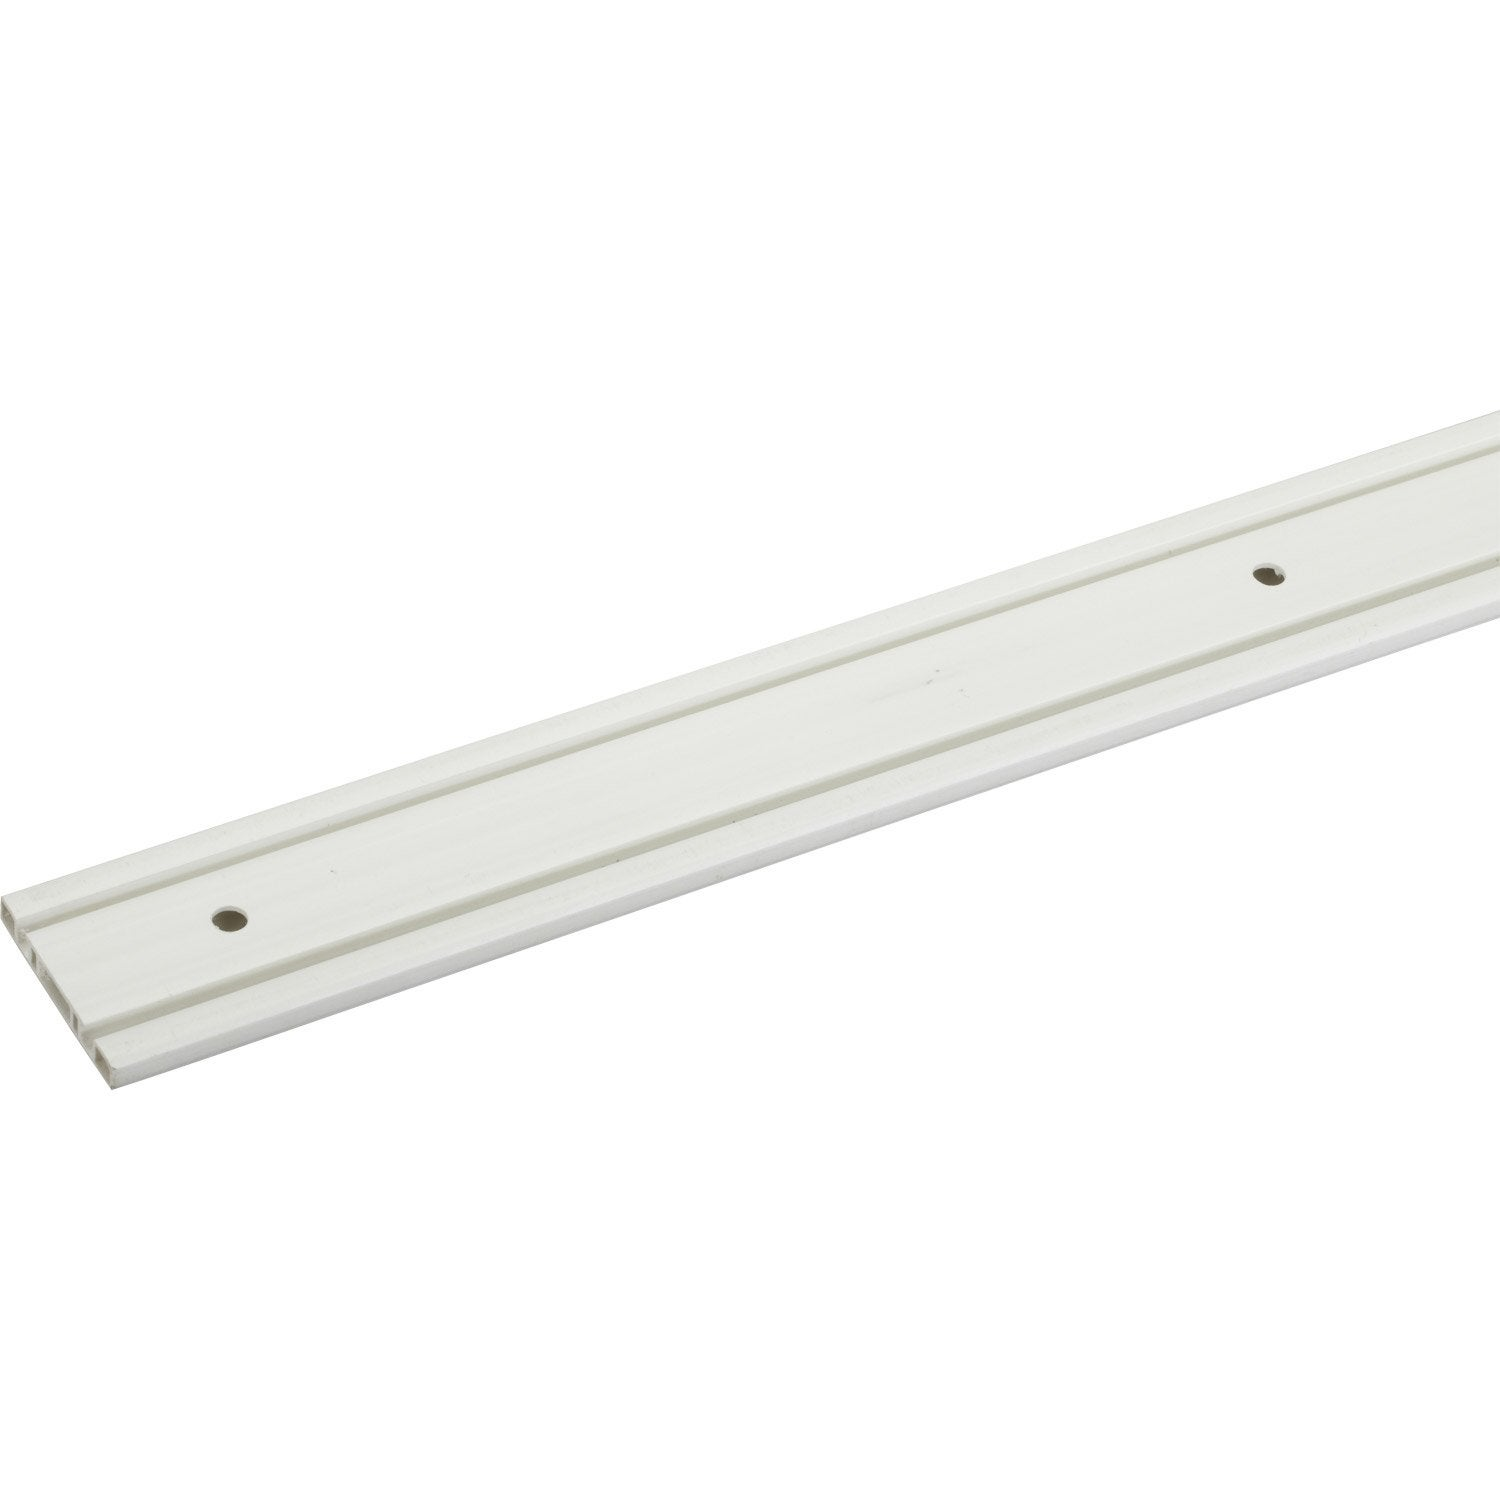 Rail plastique pour portes coulissantes hettich leroy merlin - Tringle de porte leroy merlin ...